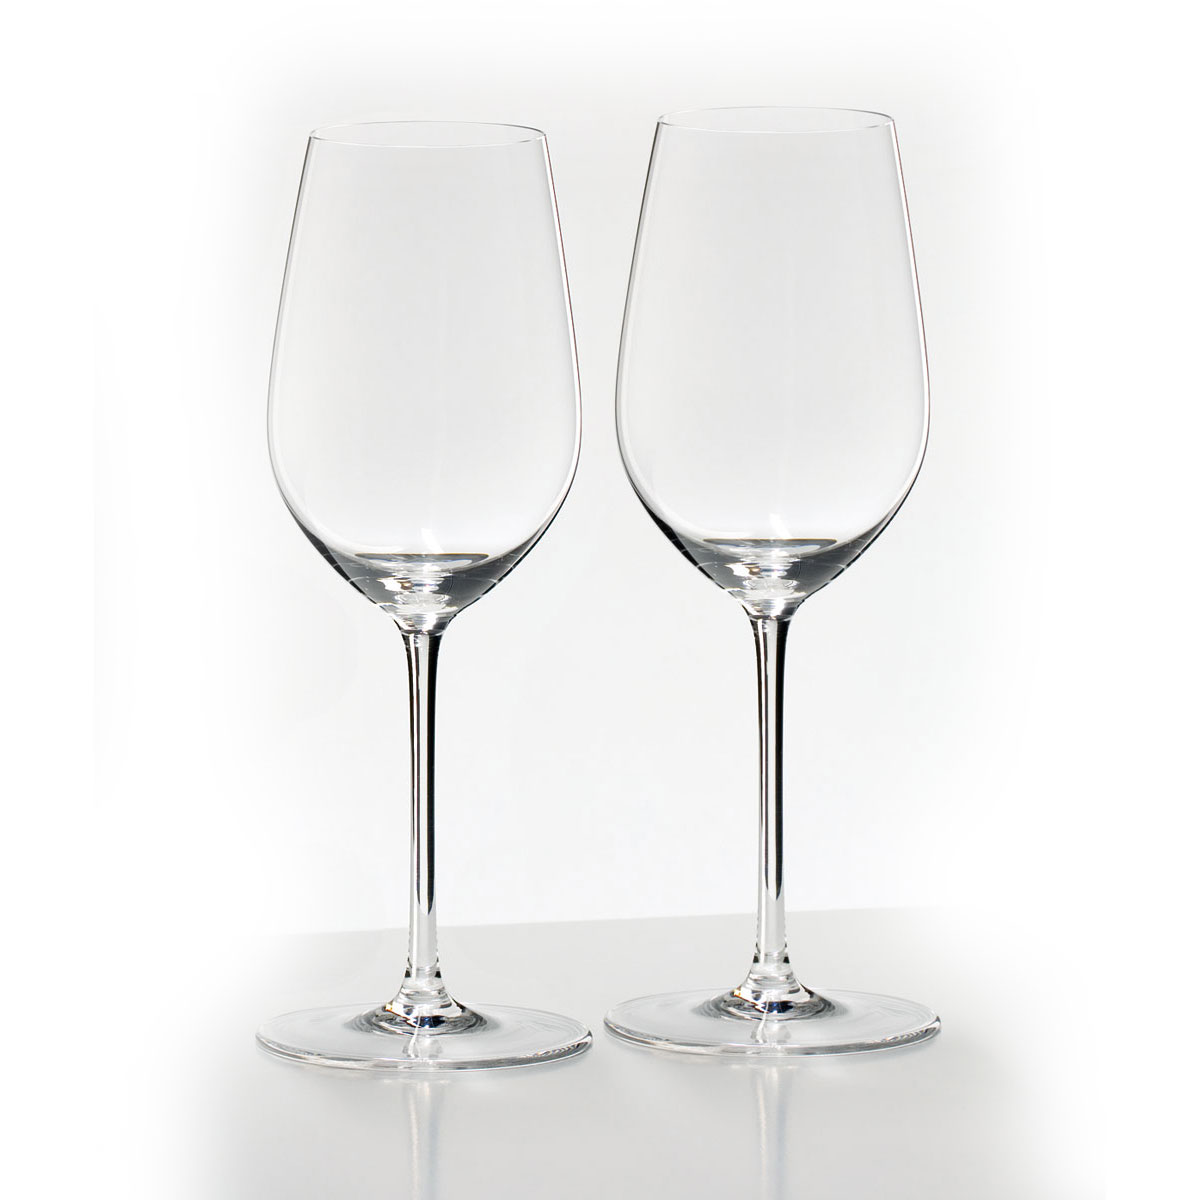 Riedel Sommeliers, Hand Made, Riesling Grand Cru Wine Glasses, Pair